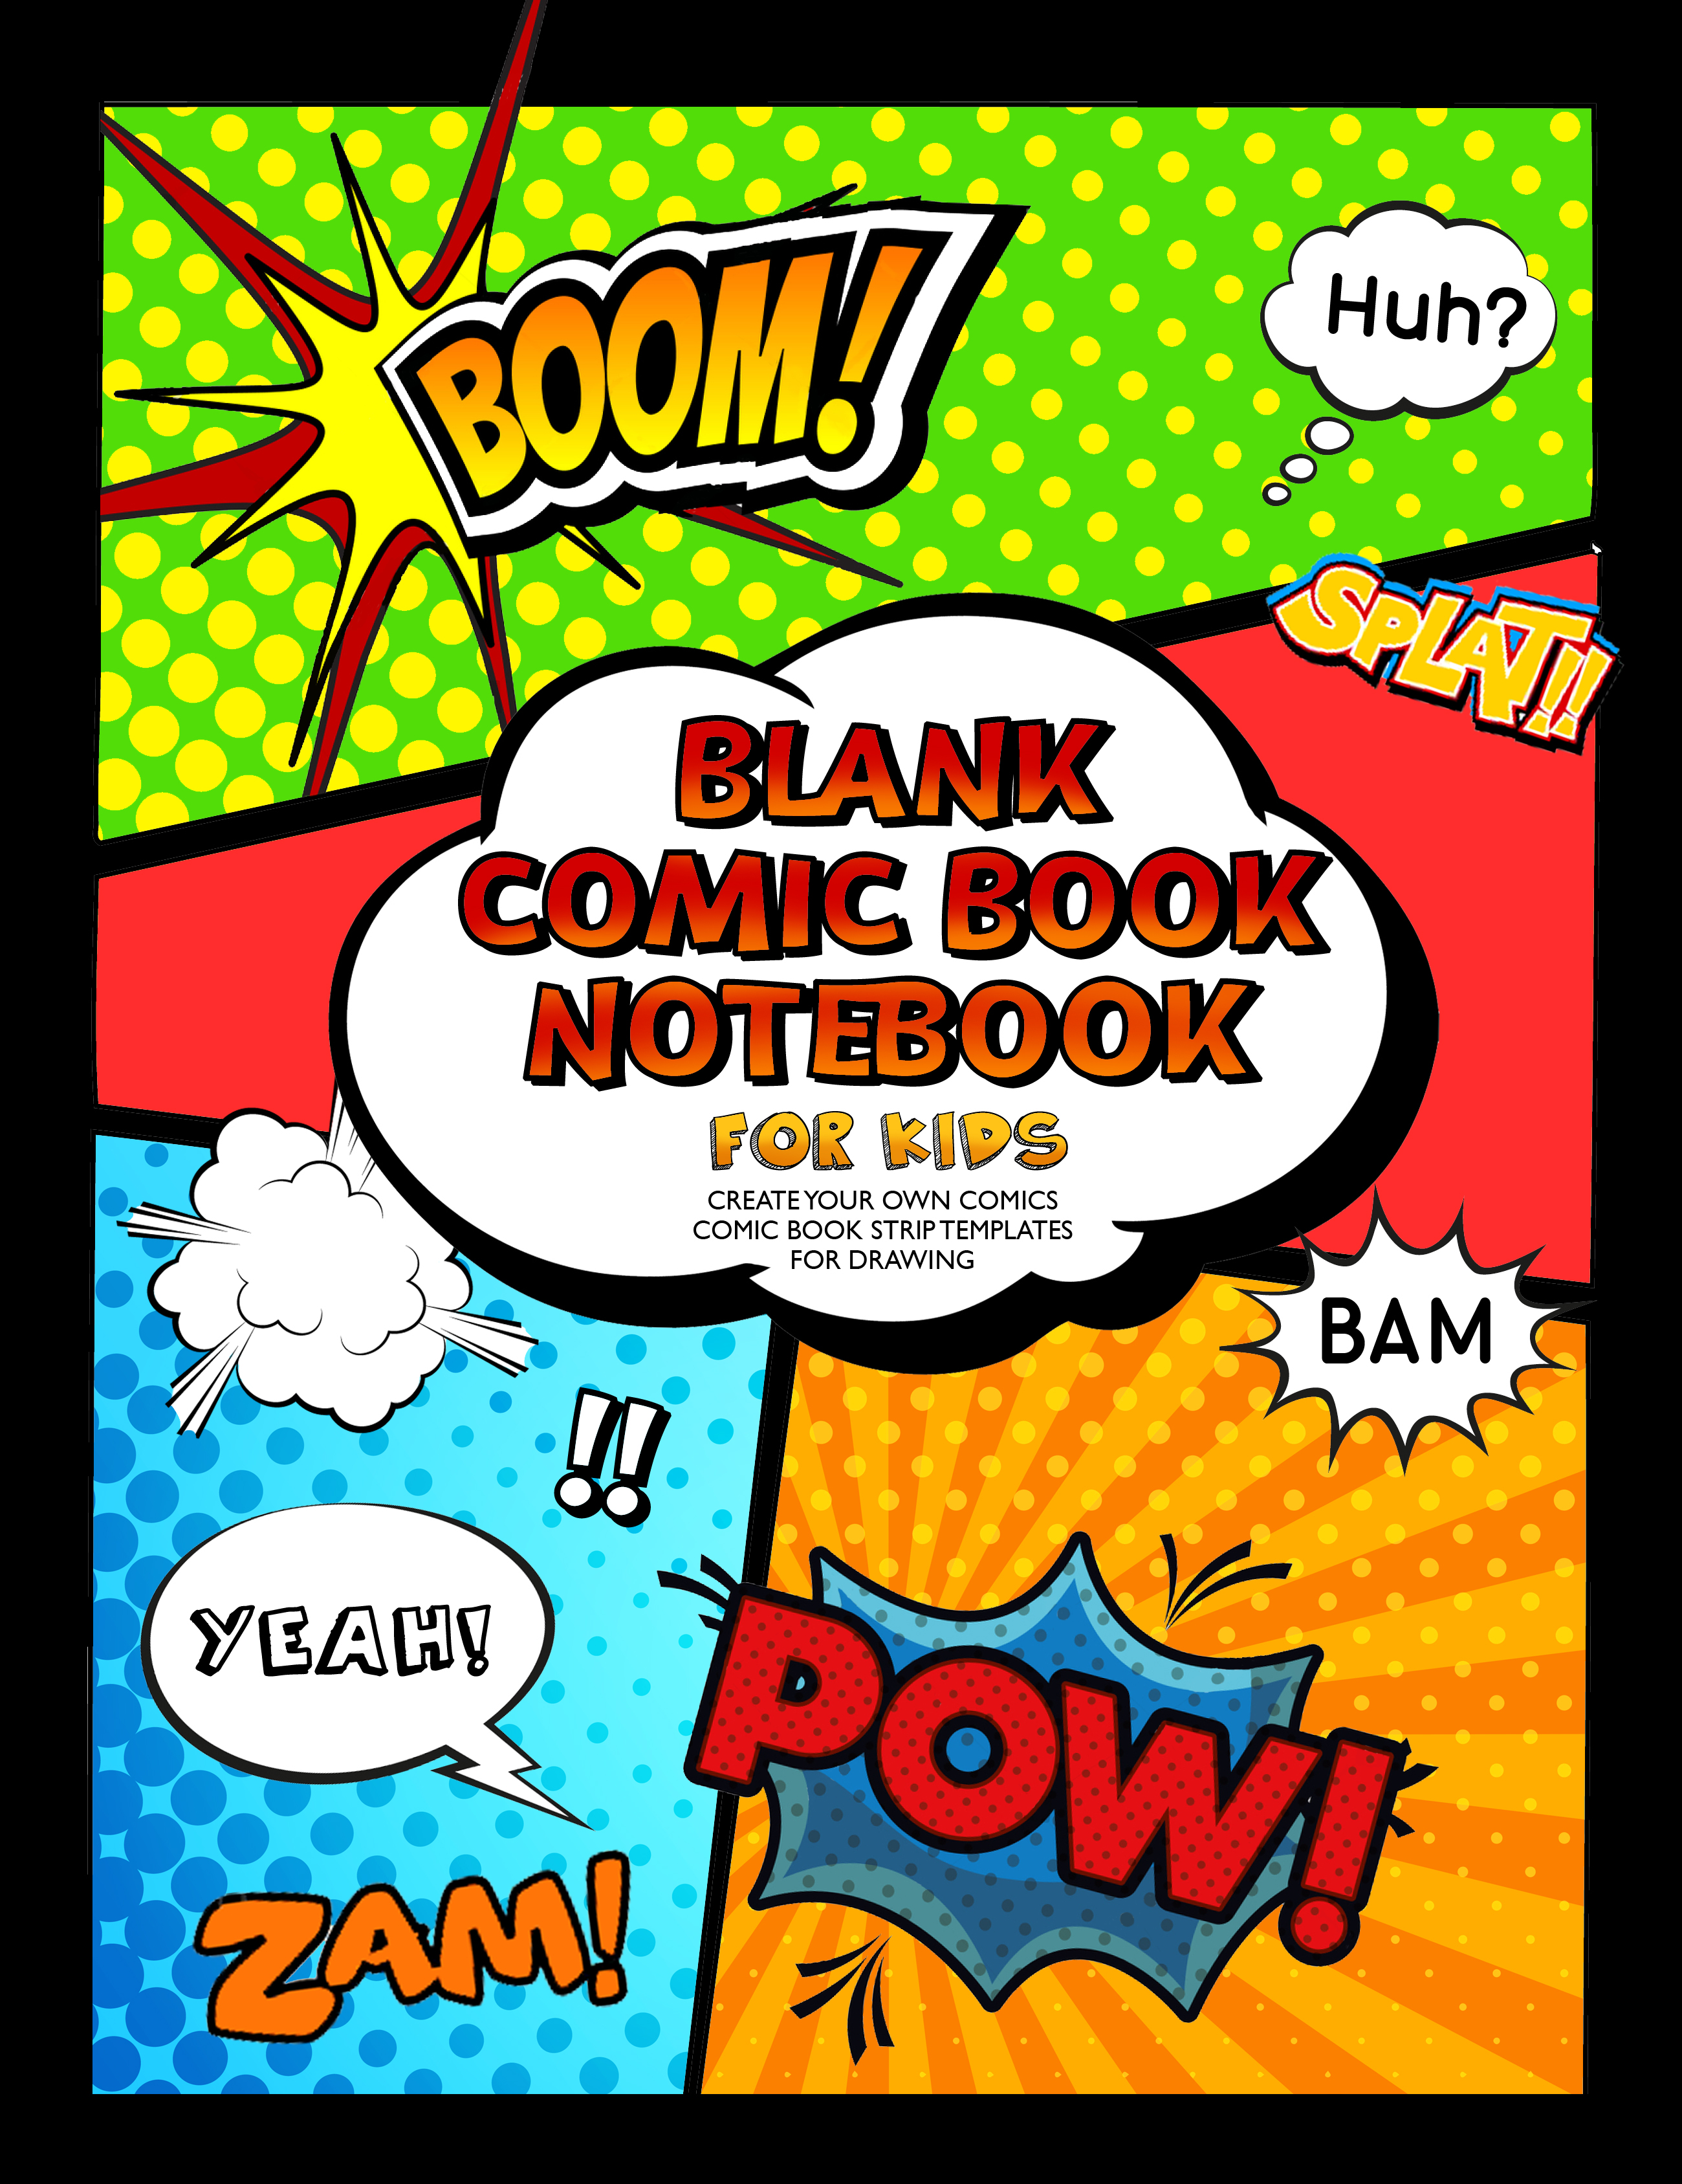 My Comic Book-front